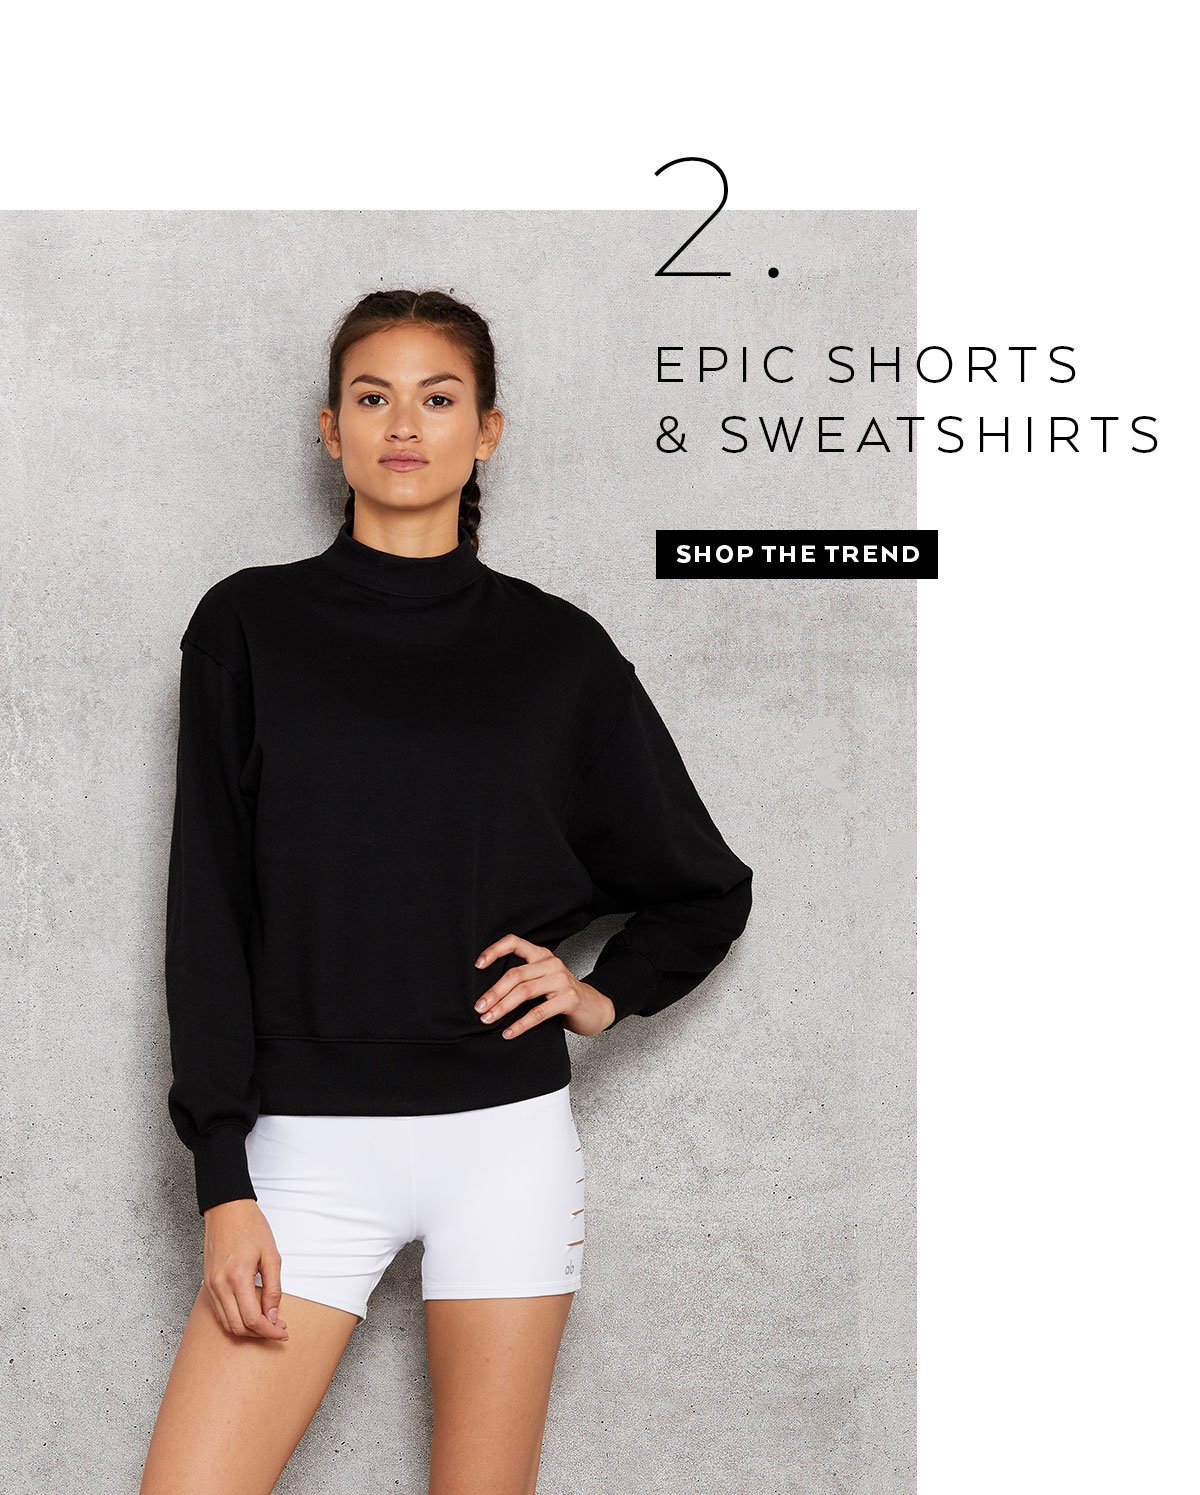 EPIC SHORTS & SWEATSHIRTS - SHOP NOW